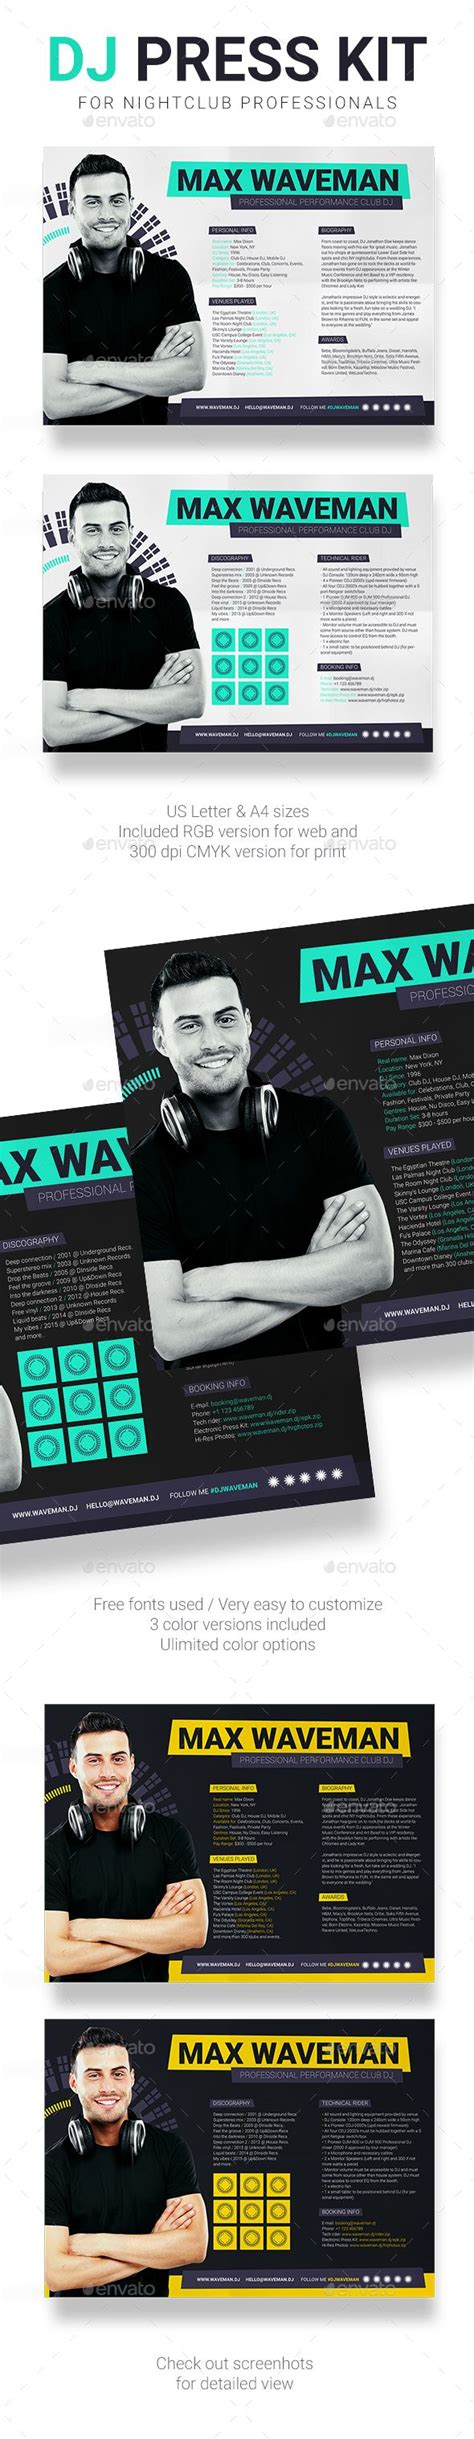 Prodj Dj Press Kit Rider Resume Psd Template Minimal Photoshop And Psd Templates Free Press Kit Template Psd